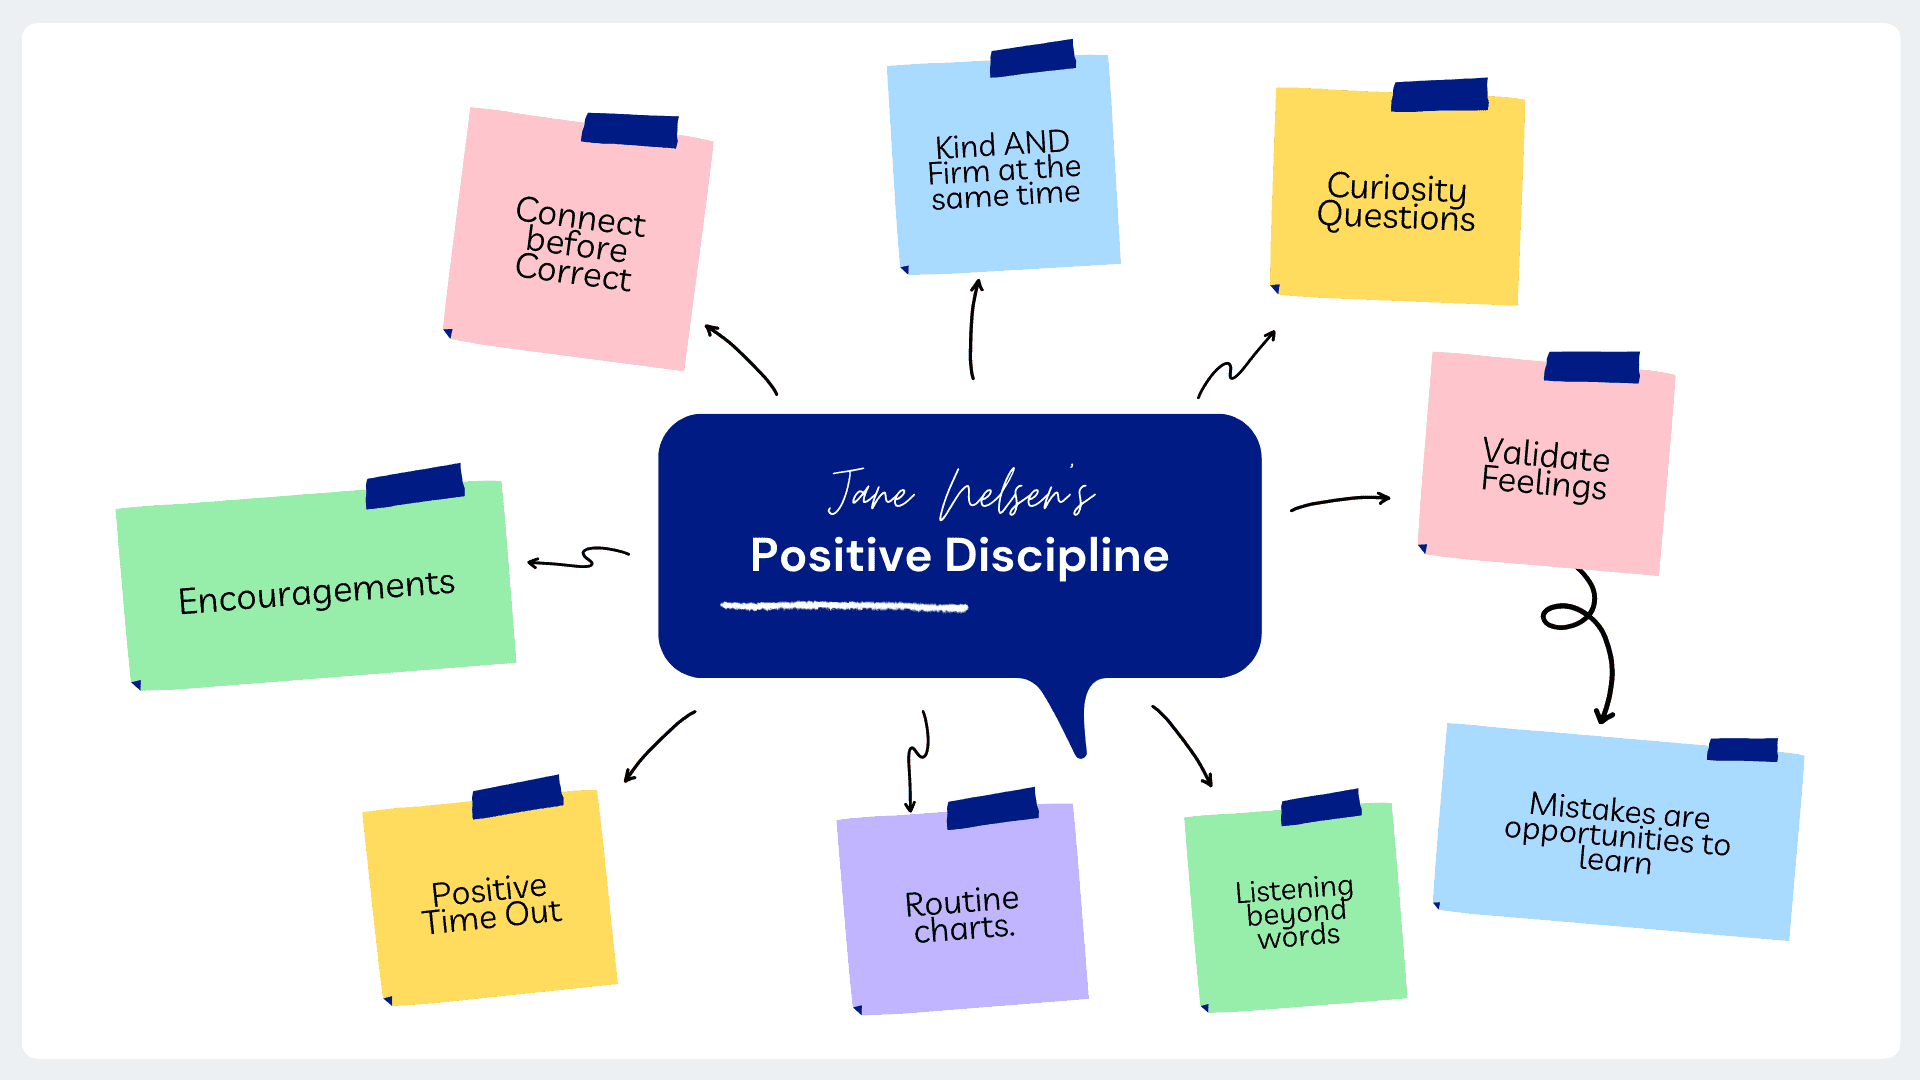 Post-It map of tools for Positive Discipline in English